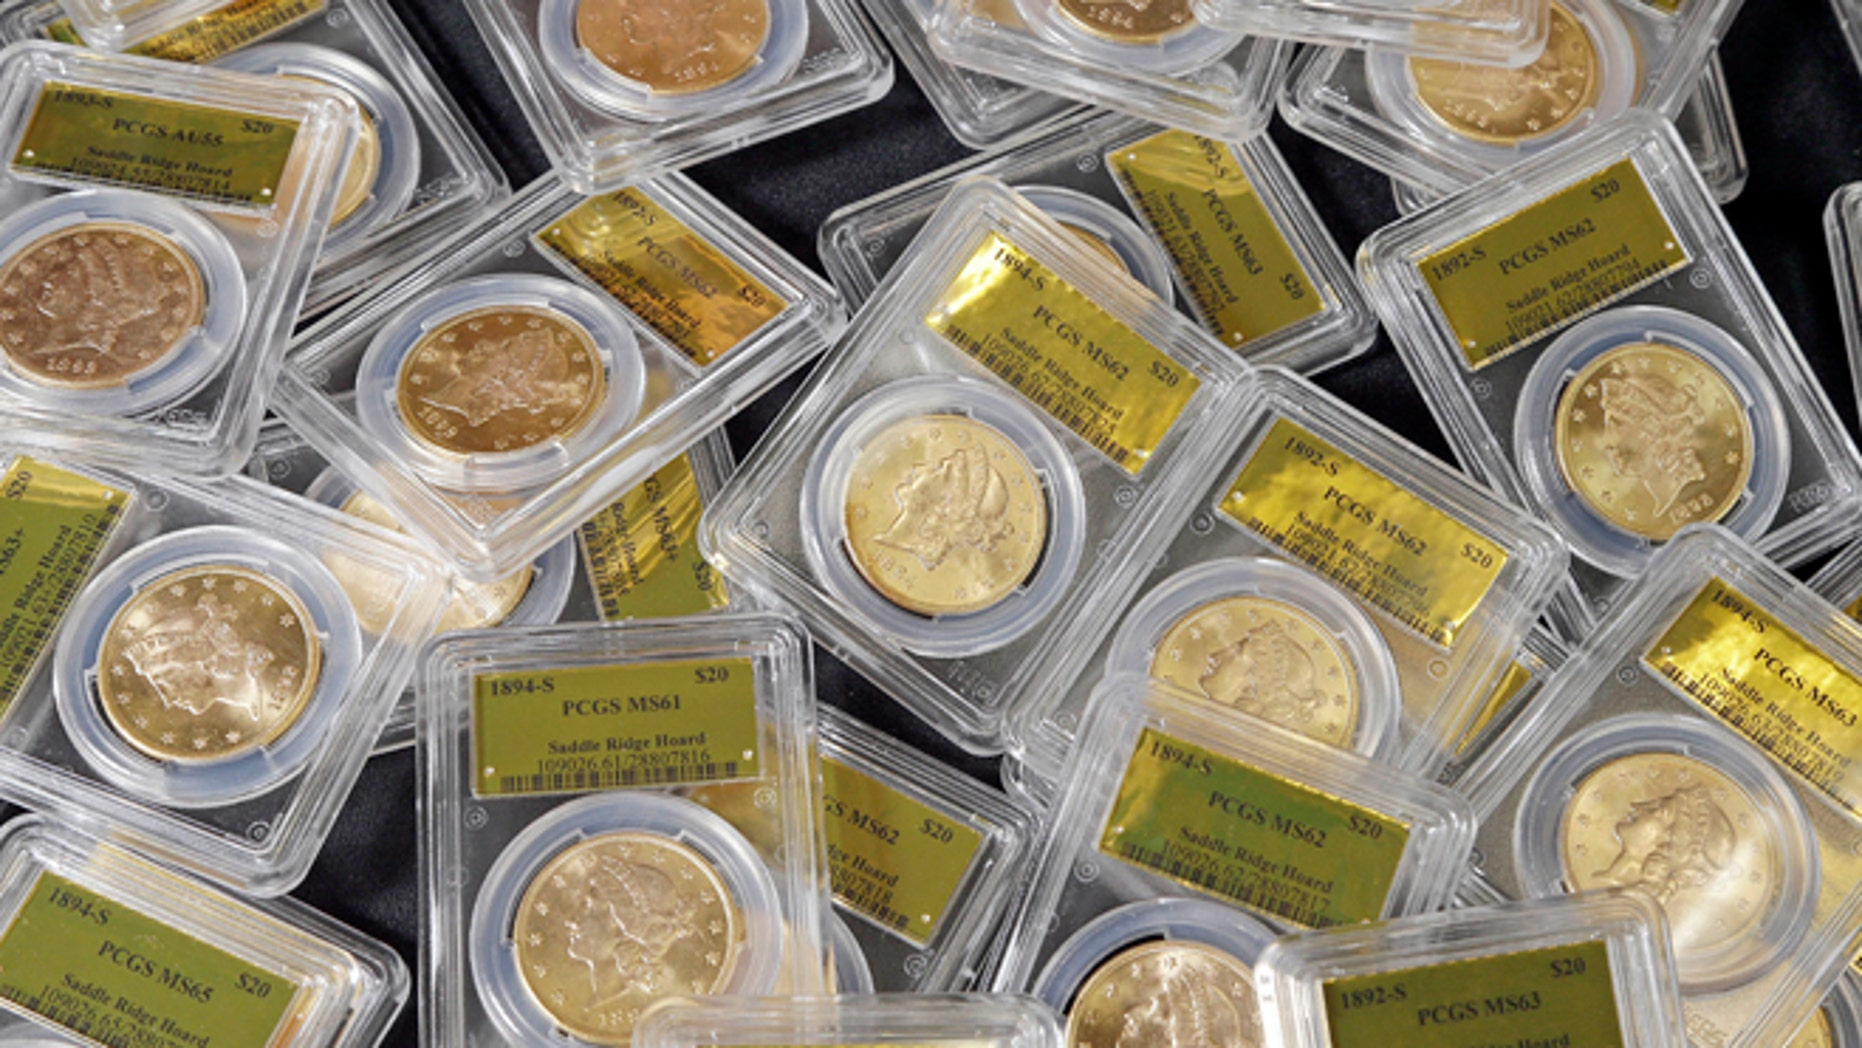 Feb. 25, 2014: This file photo shows some of the 1,427 Gold-Rush era U.S. gold coins displayed at Professional Coin Grading Service in Santa Ana, Calif.